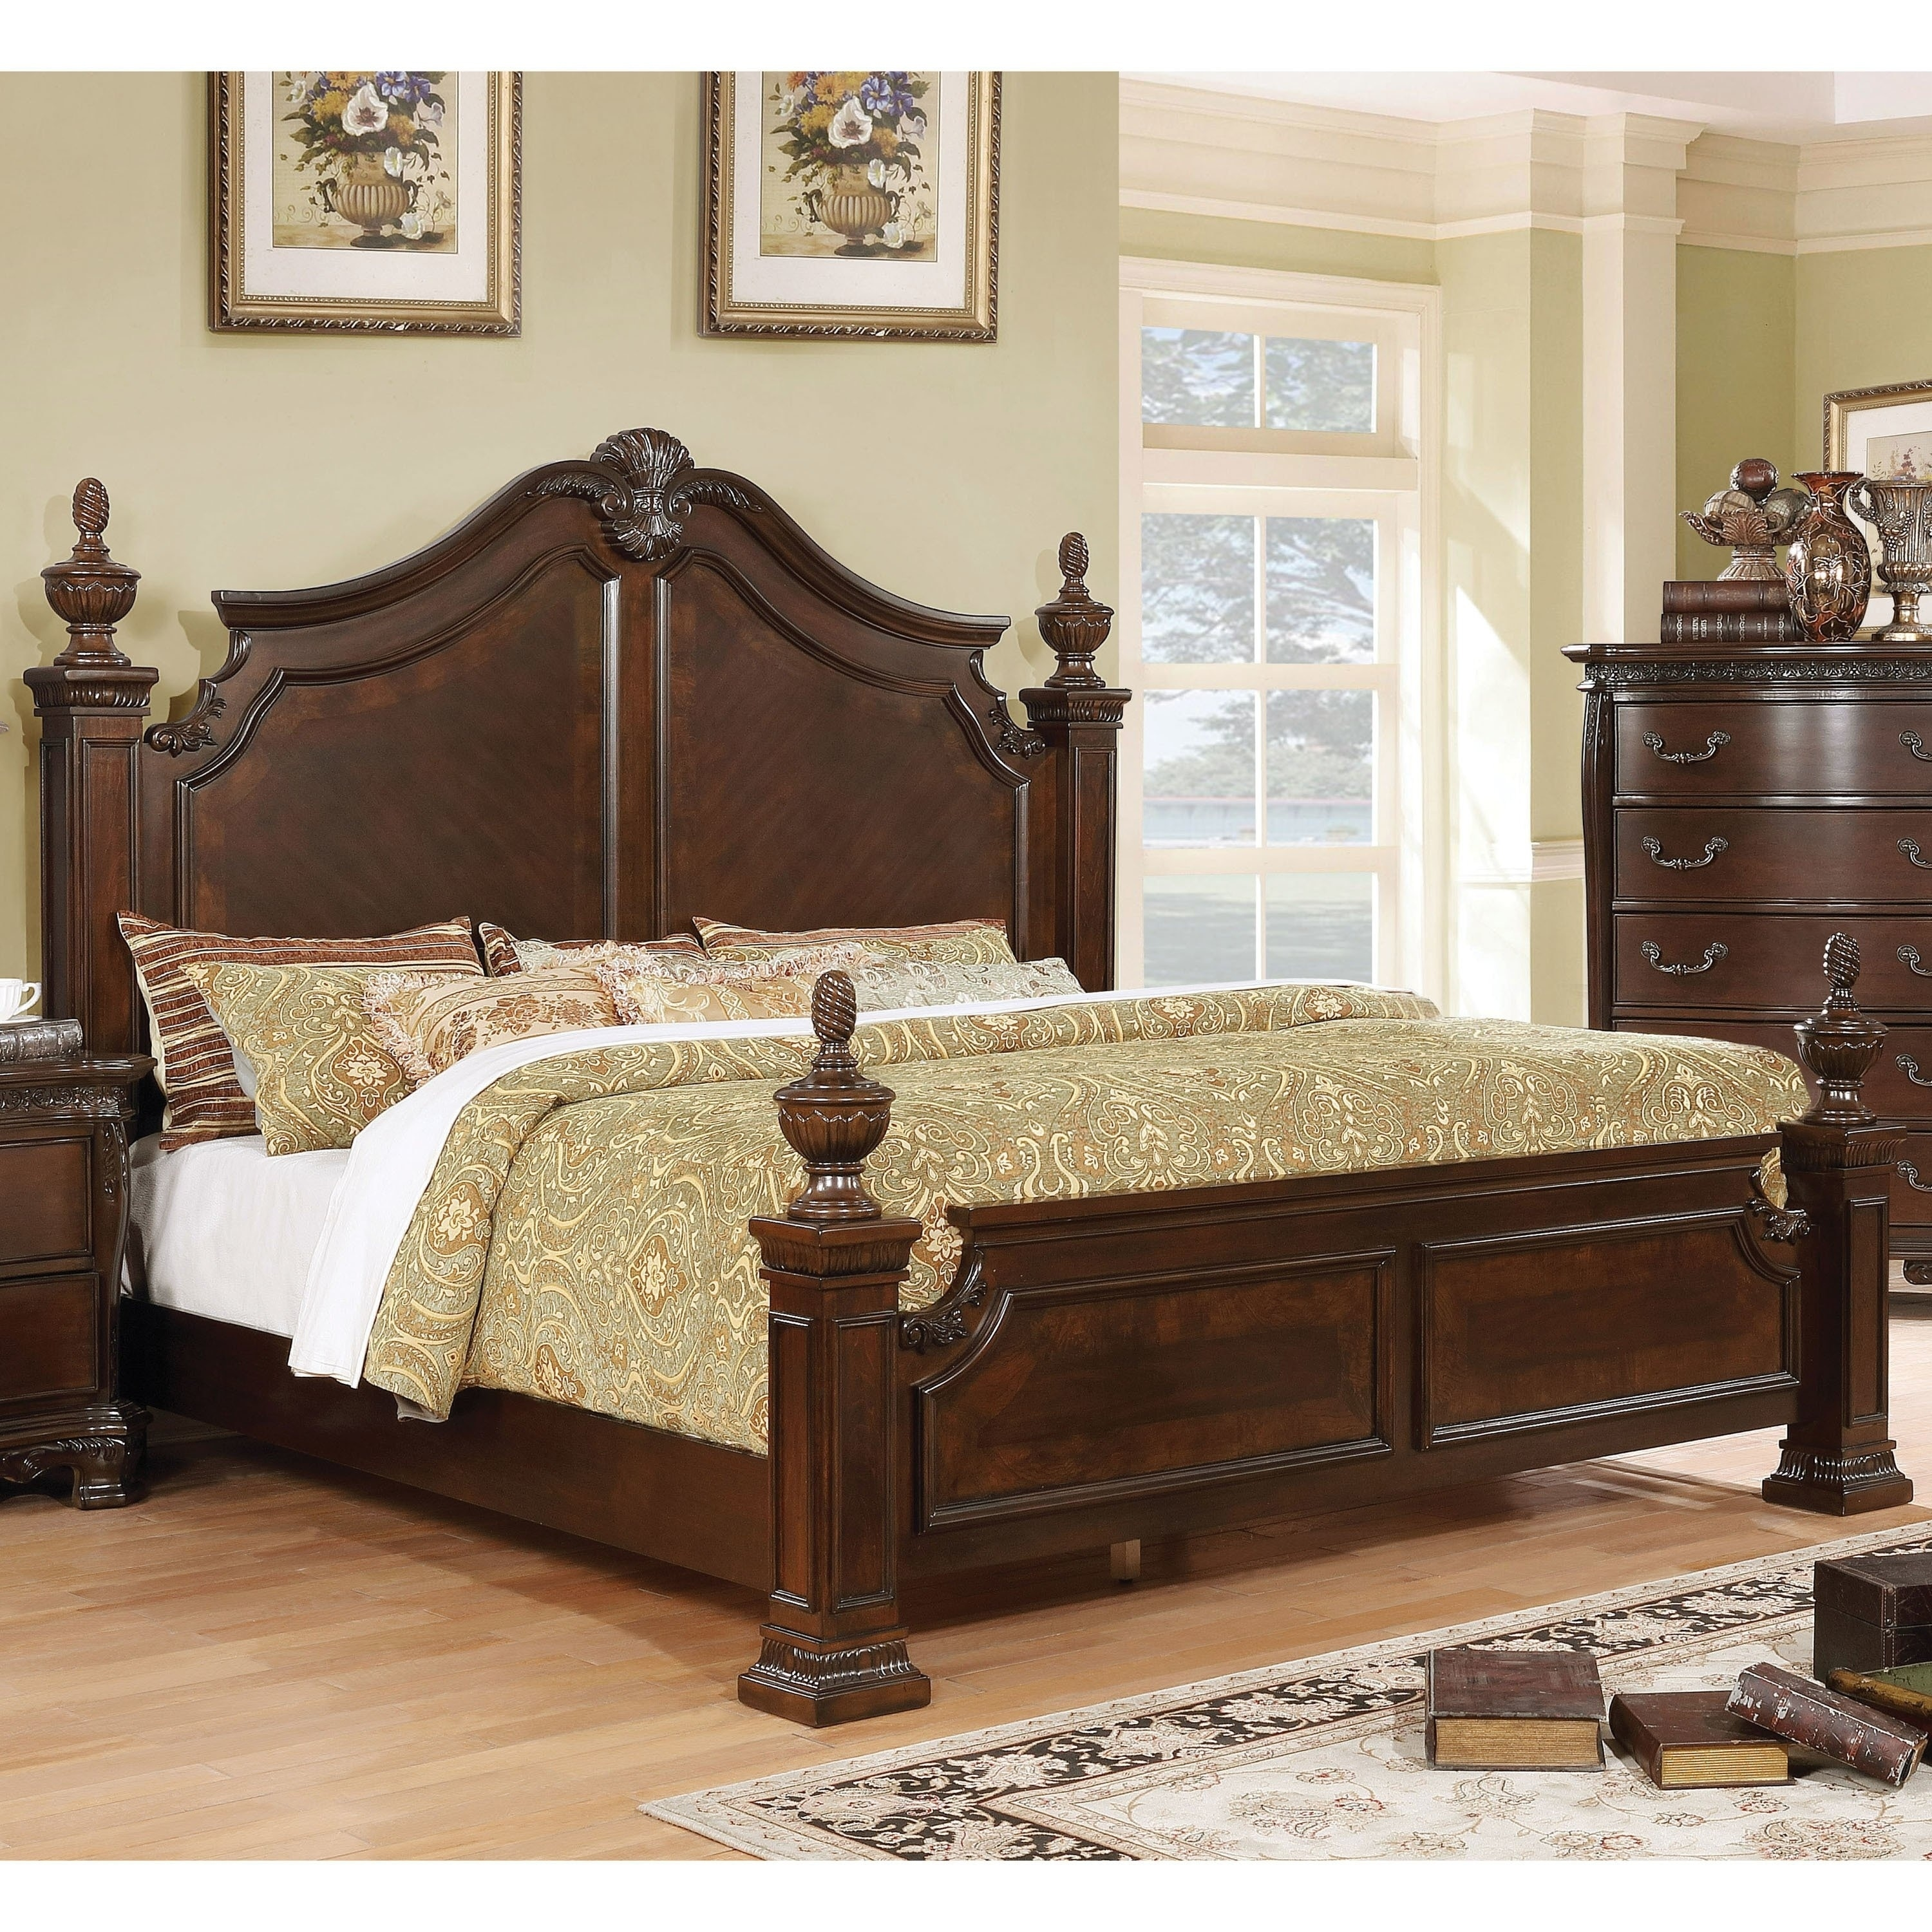 Furniture Of America Ulla Traditional Solid Wood Four Poster Bed